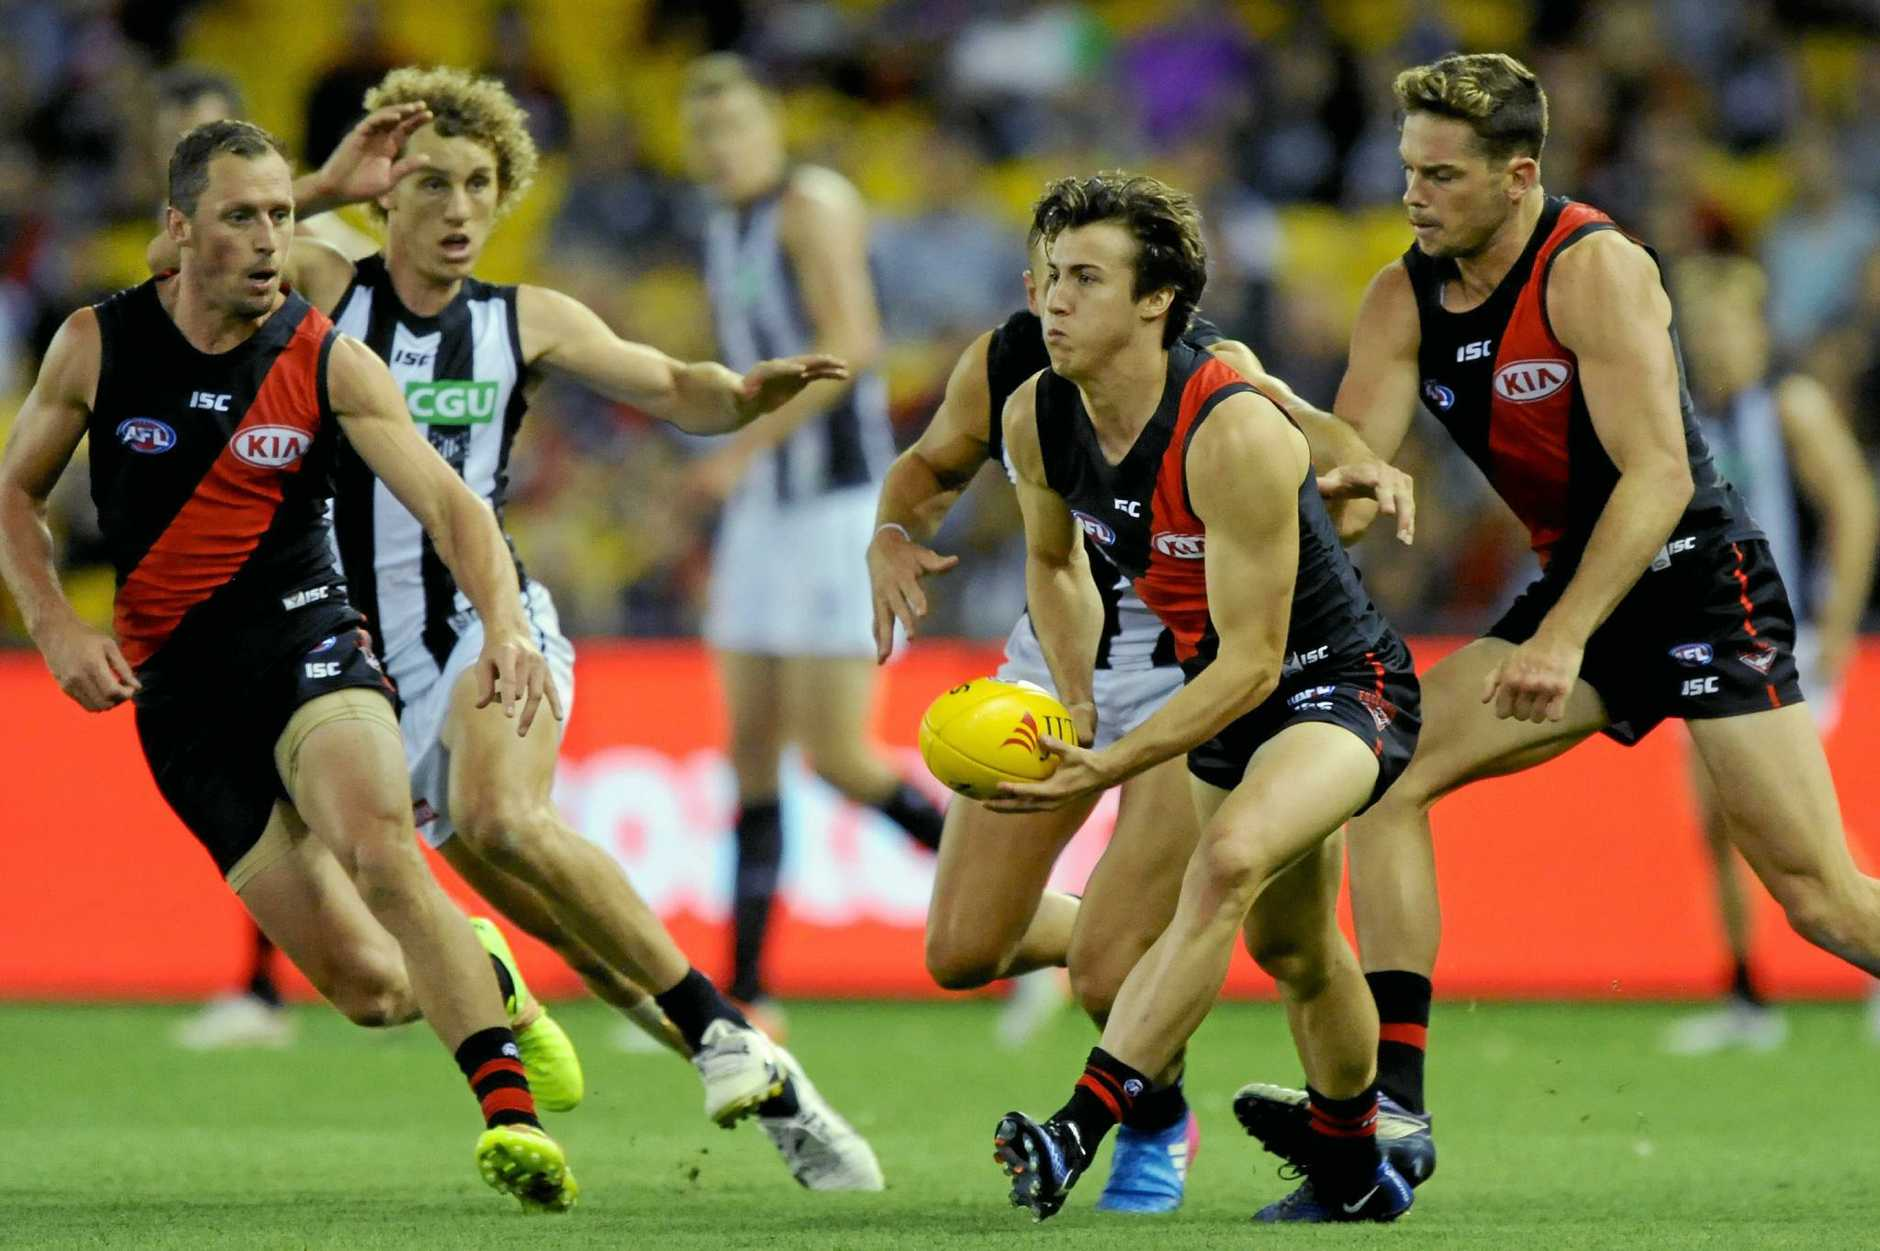 Andrew McGrath of the Bombers with the ball during the JLT Community pre-season match between Essendon and Collingwood.